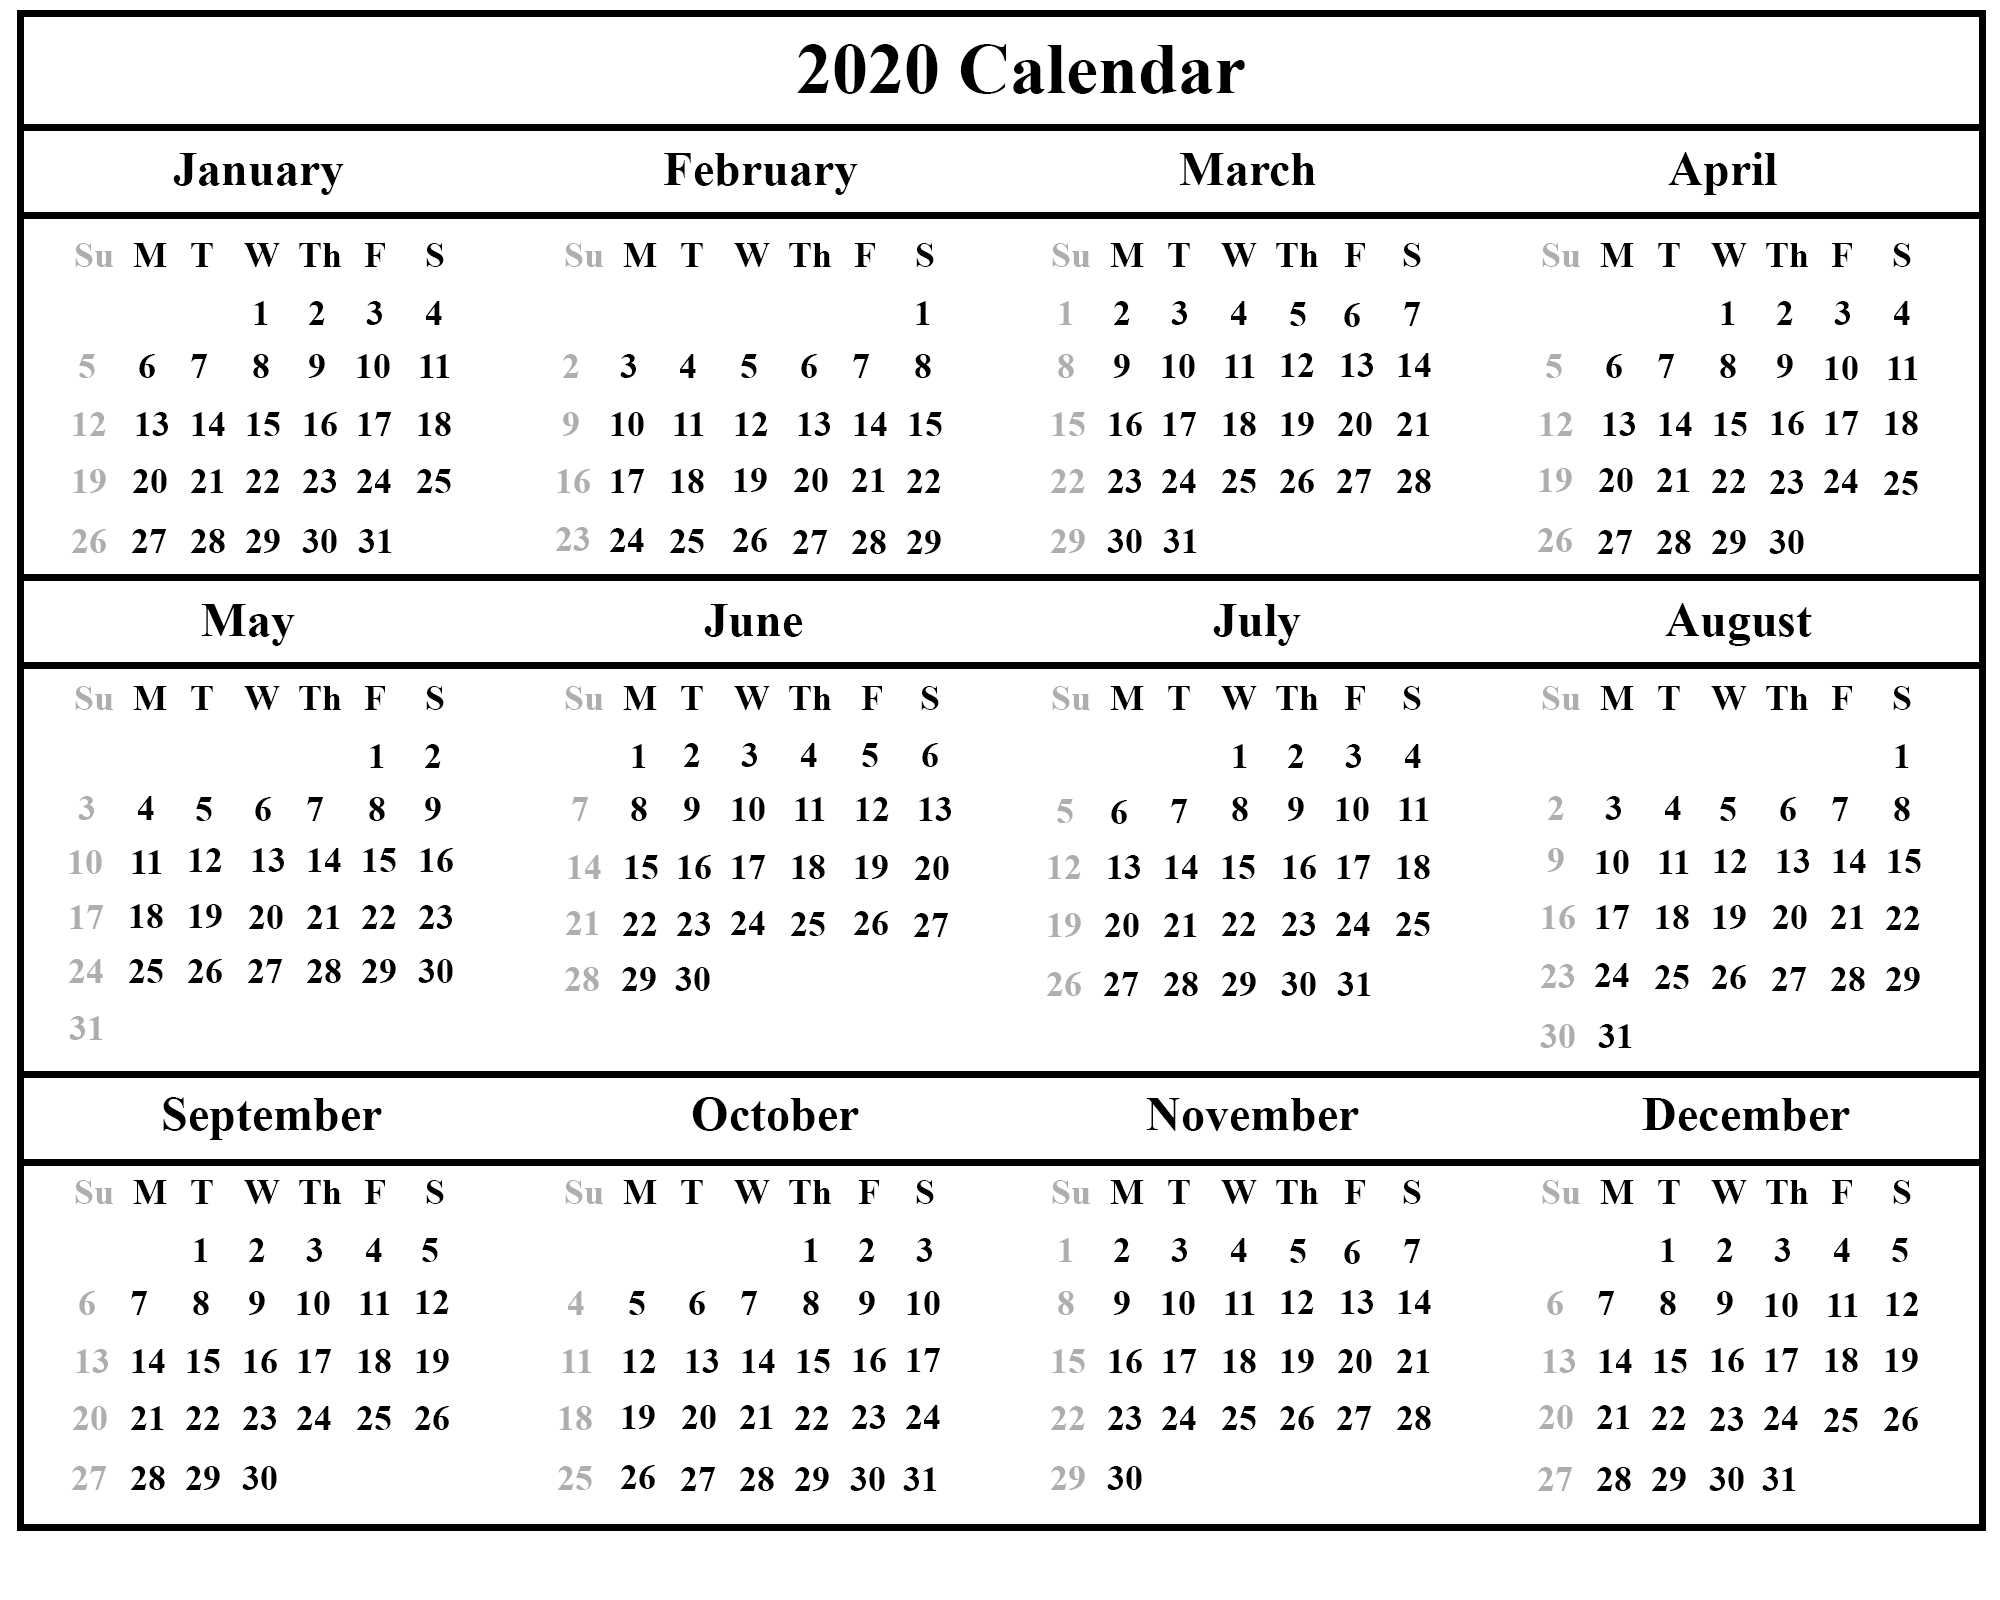 Free Printable Calendar 2020 With Holidays | 12 Month for Printable Calander 2020